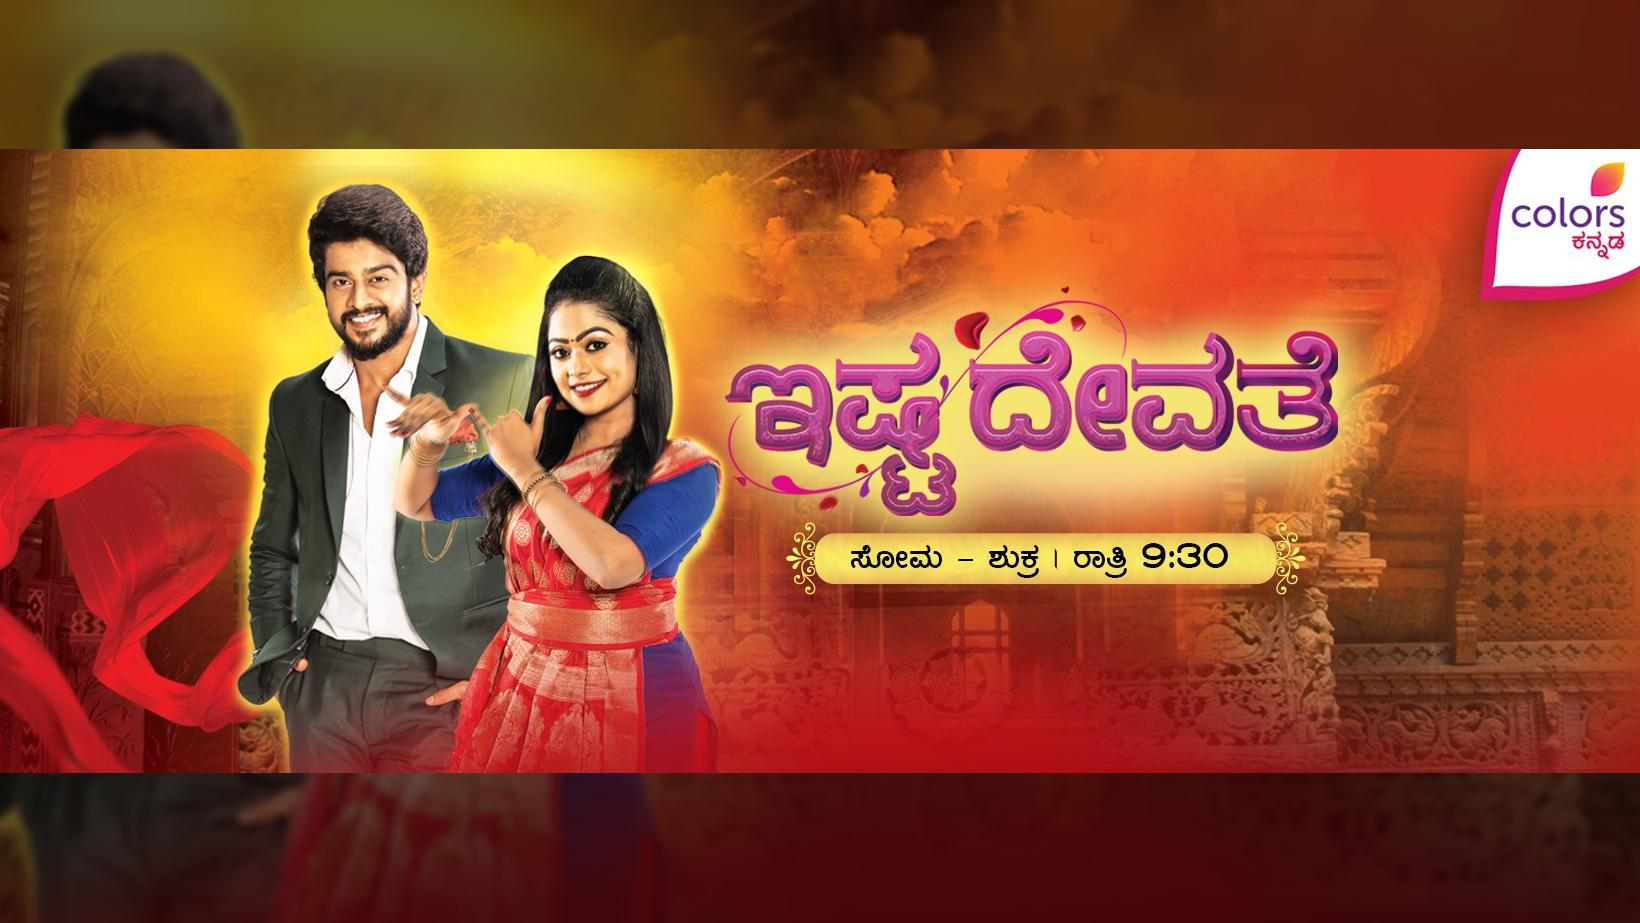 Stream And Watch Colors Kannada Online | Sling TV